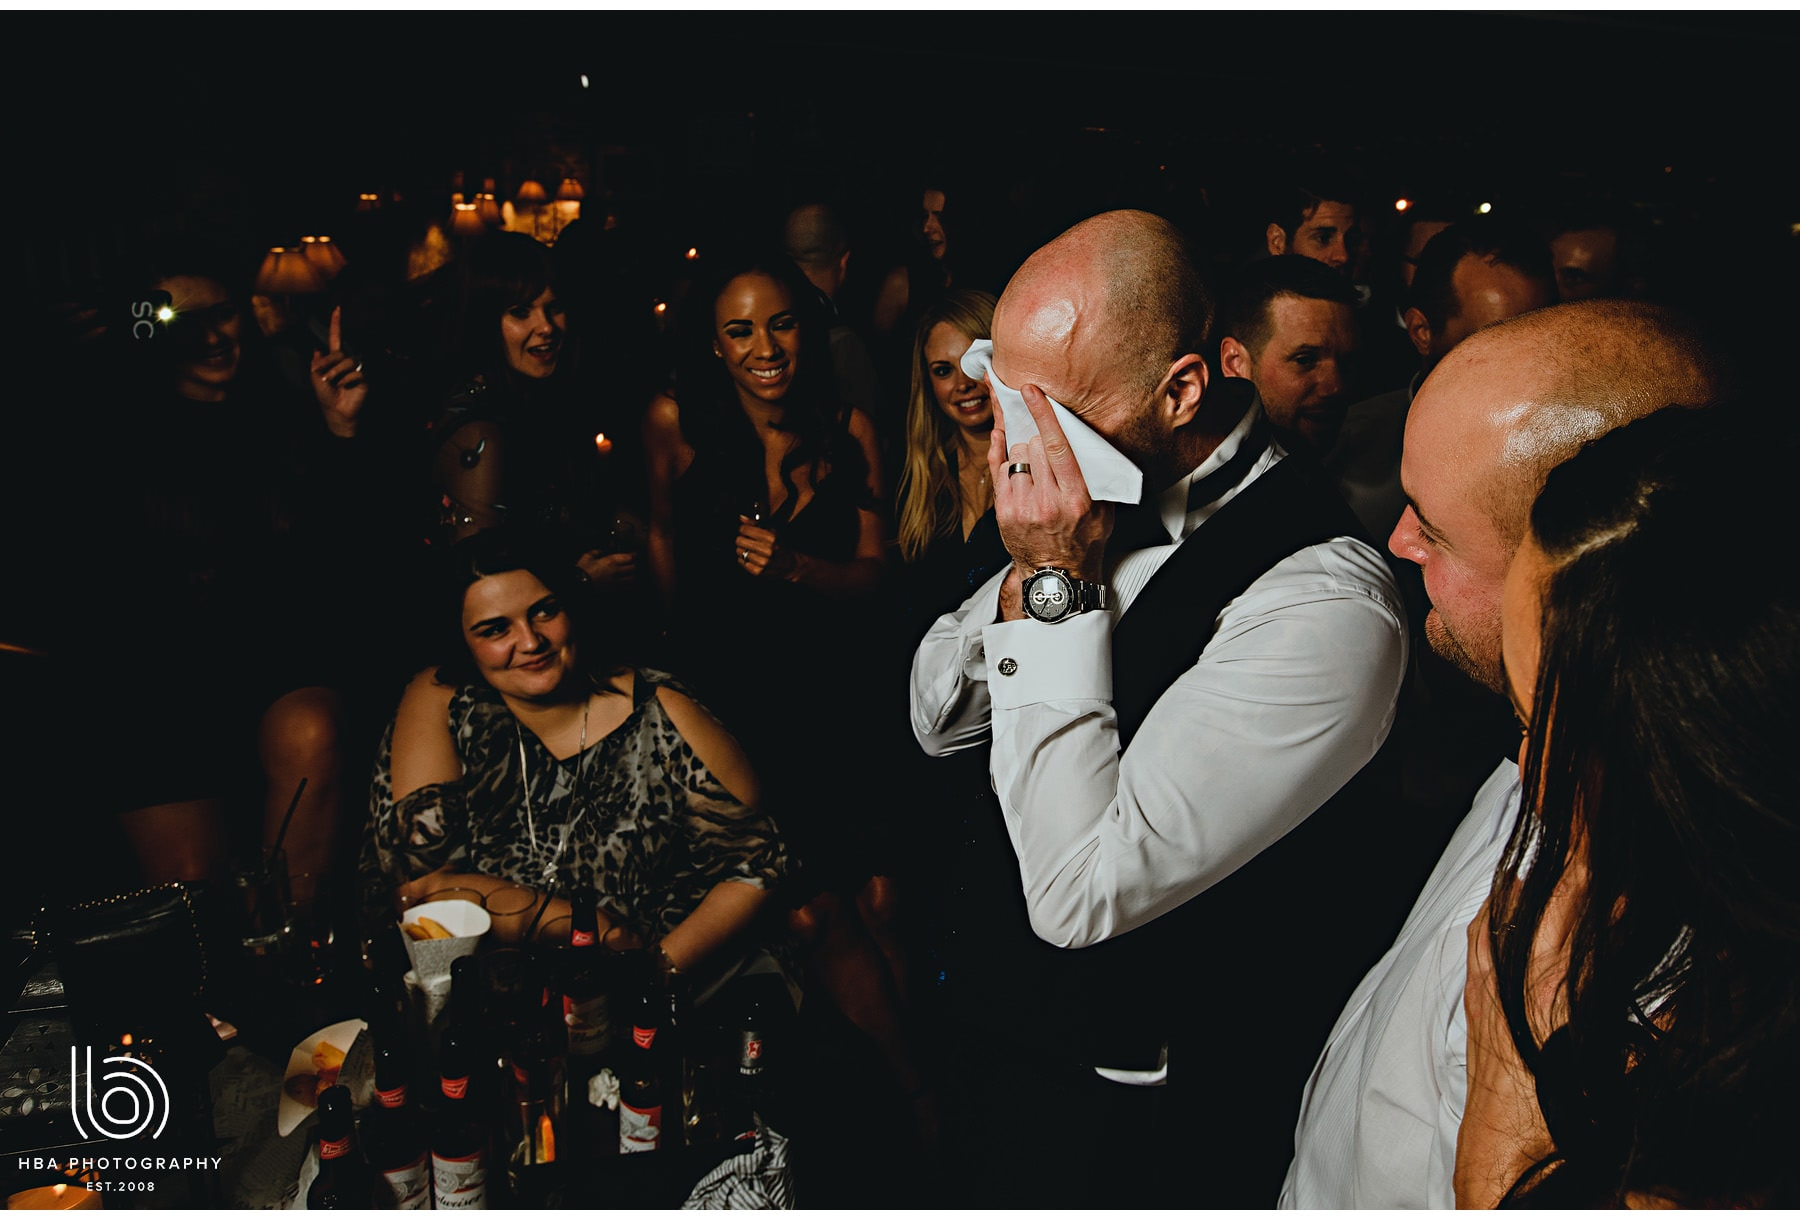 the groom in tears